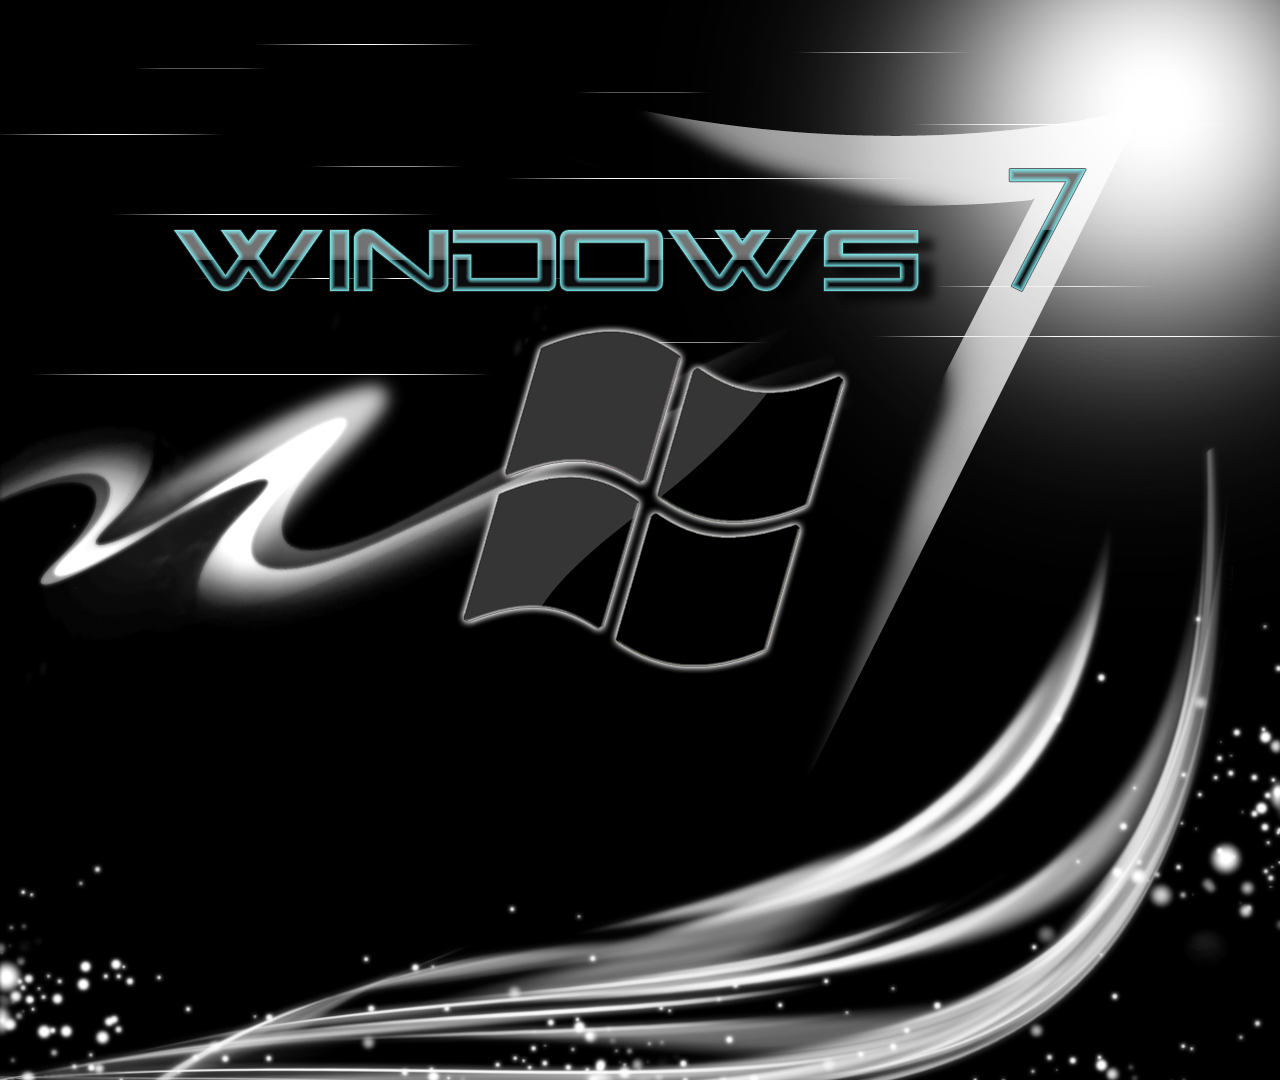 Free Window 7 HD Wallpaper HD Wallpapers Of Windows